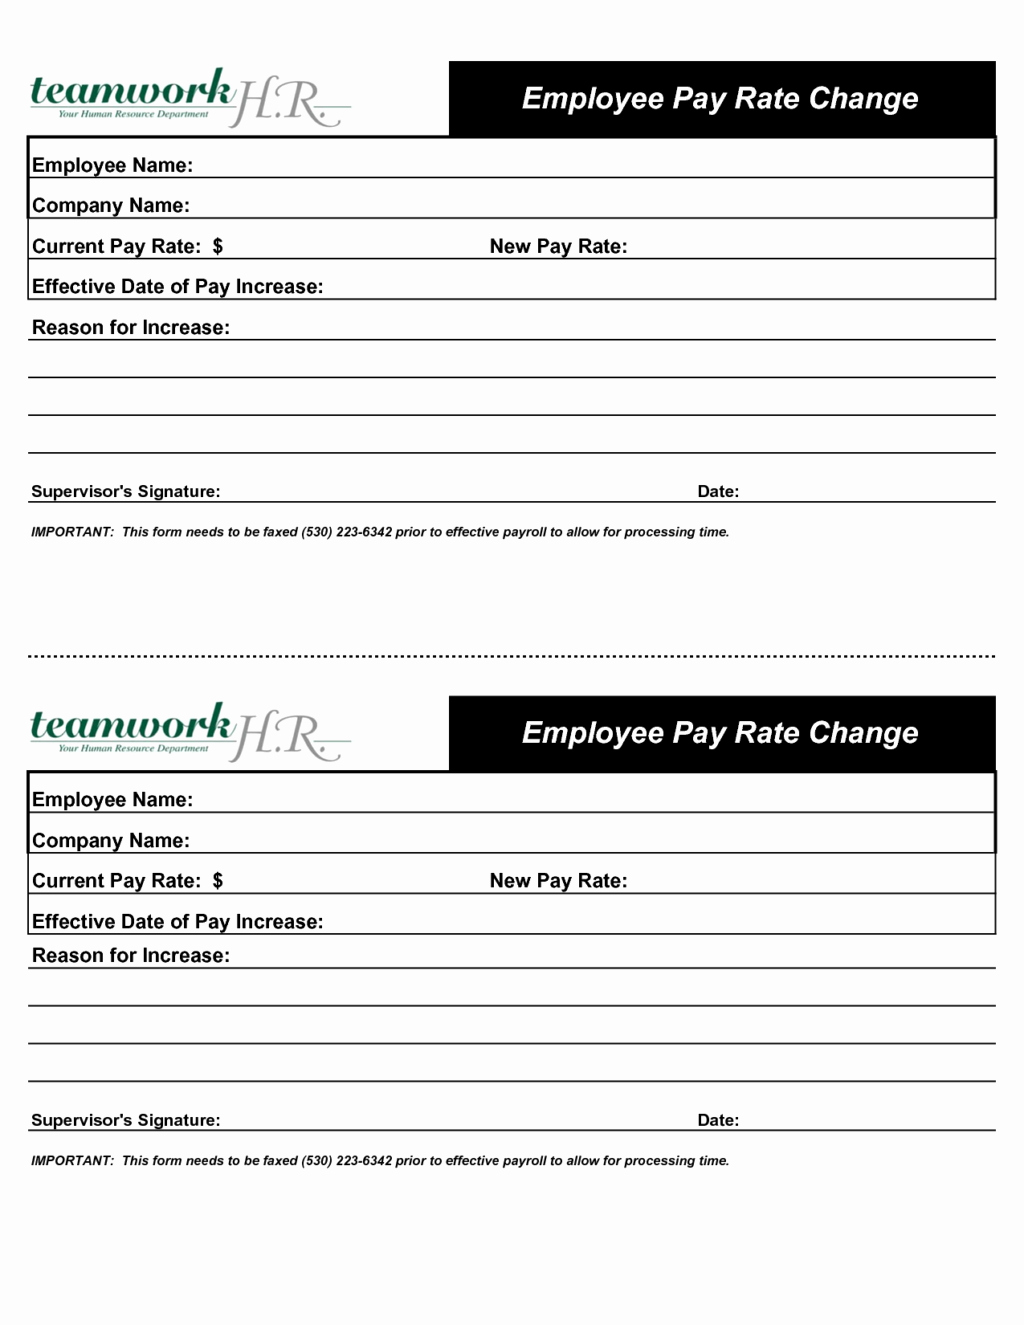 Salary Change form Fresh Inspirational Employee Pay Rate Change Increase form